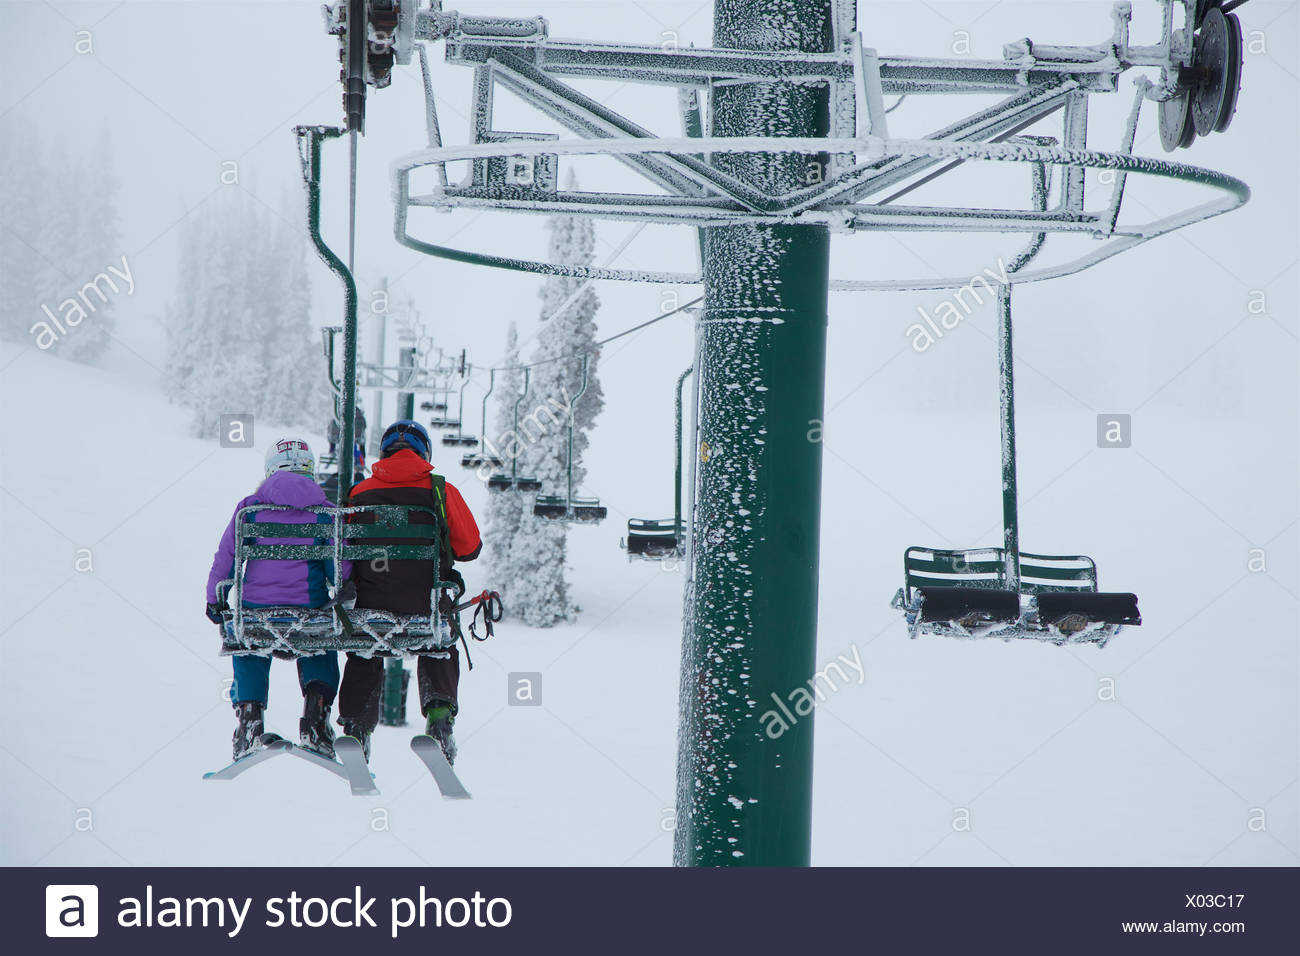 Siblings riding the chairlift to go skiing in stormy conditions. - Stock Image